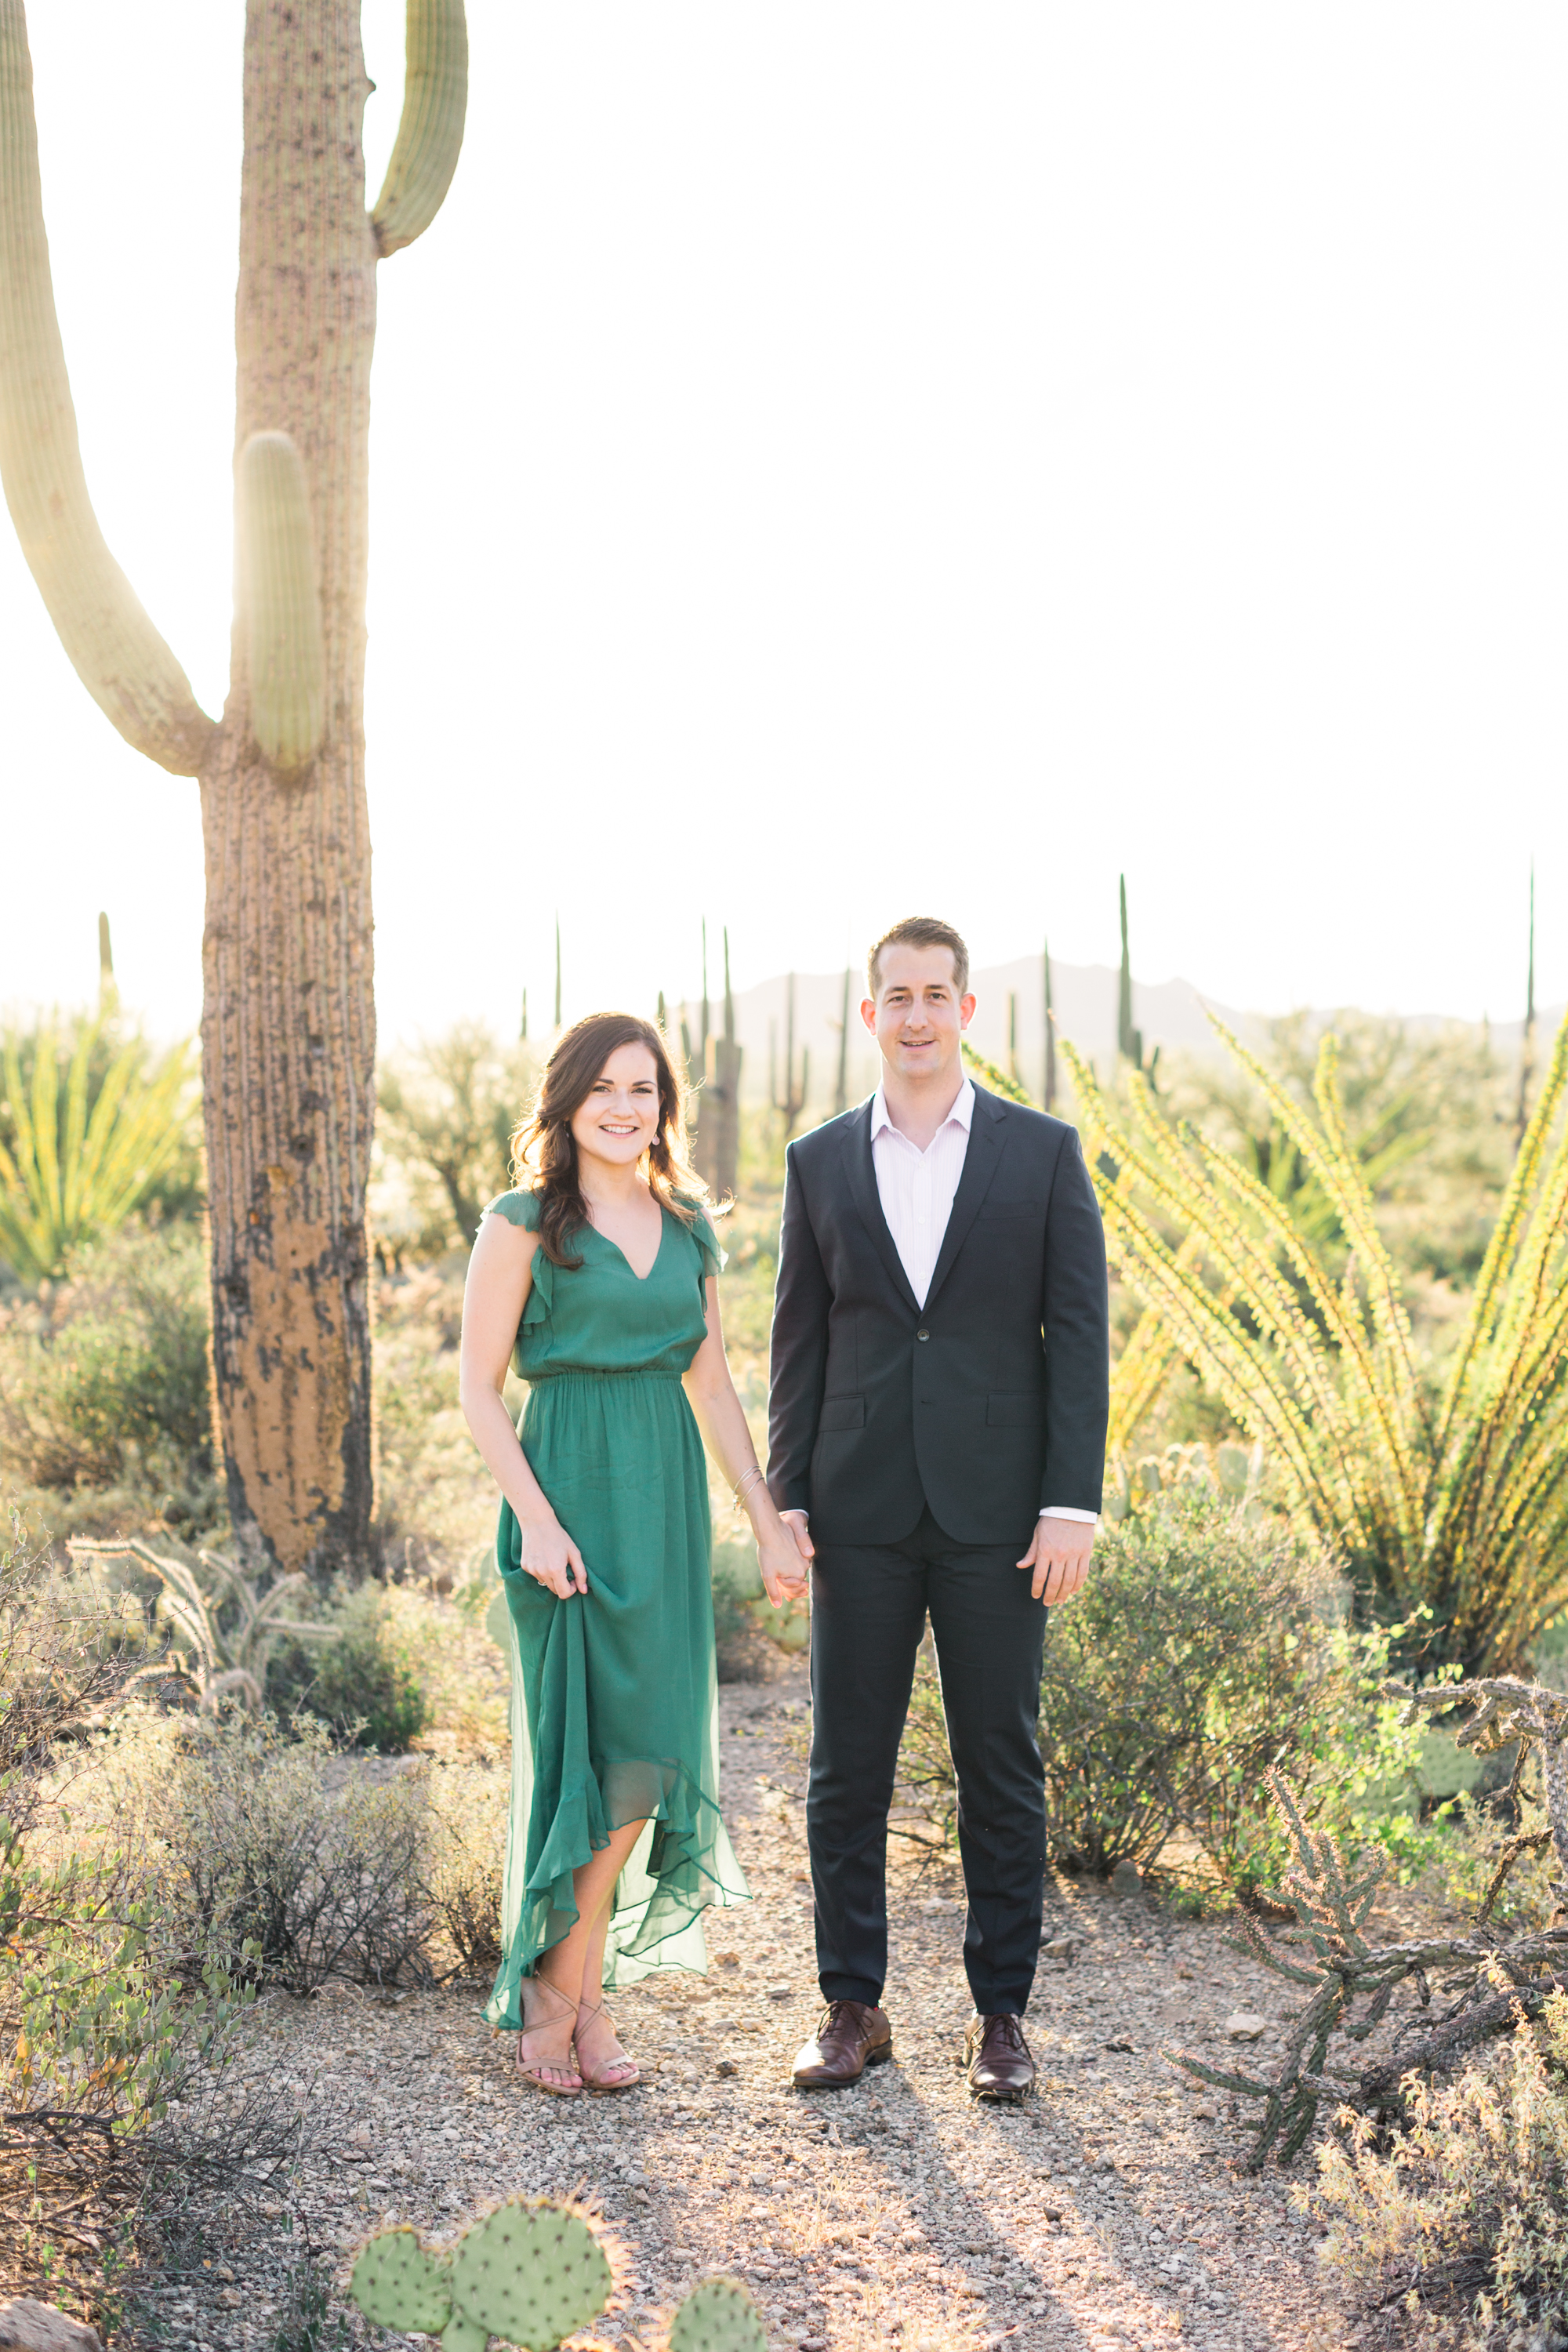 We love their outfits Alyssa & Dave chose for their engagement session. Her green dress compliments the gorgeous desert gorgeous desert tones perfectly.